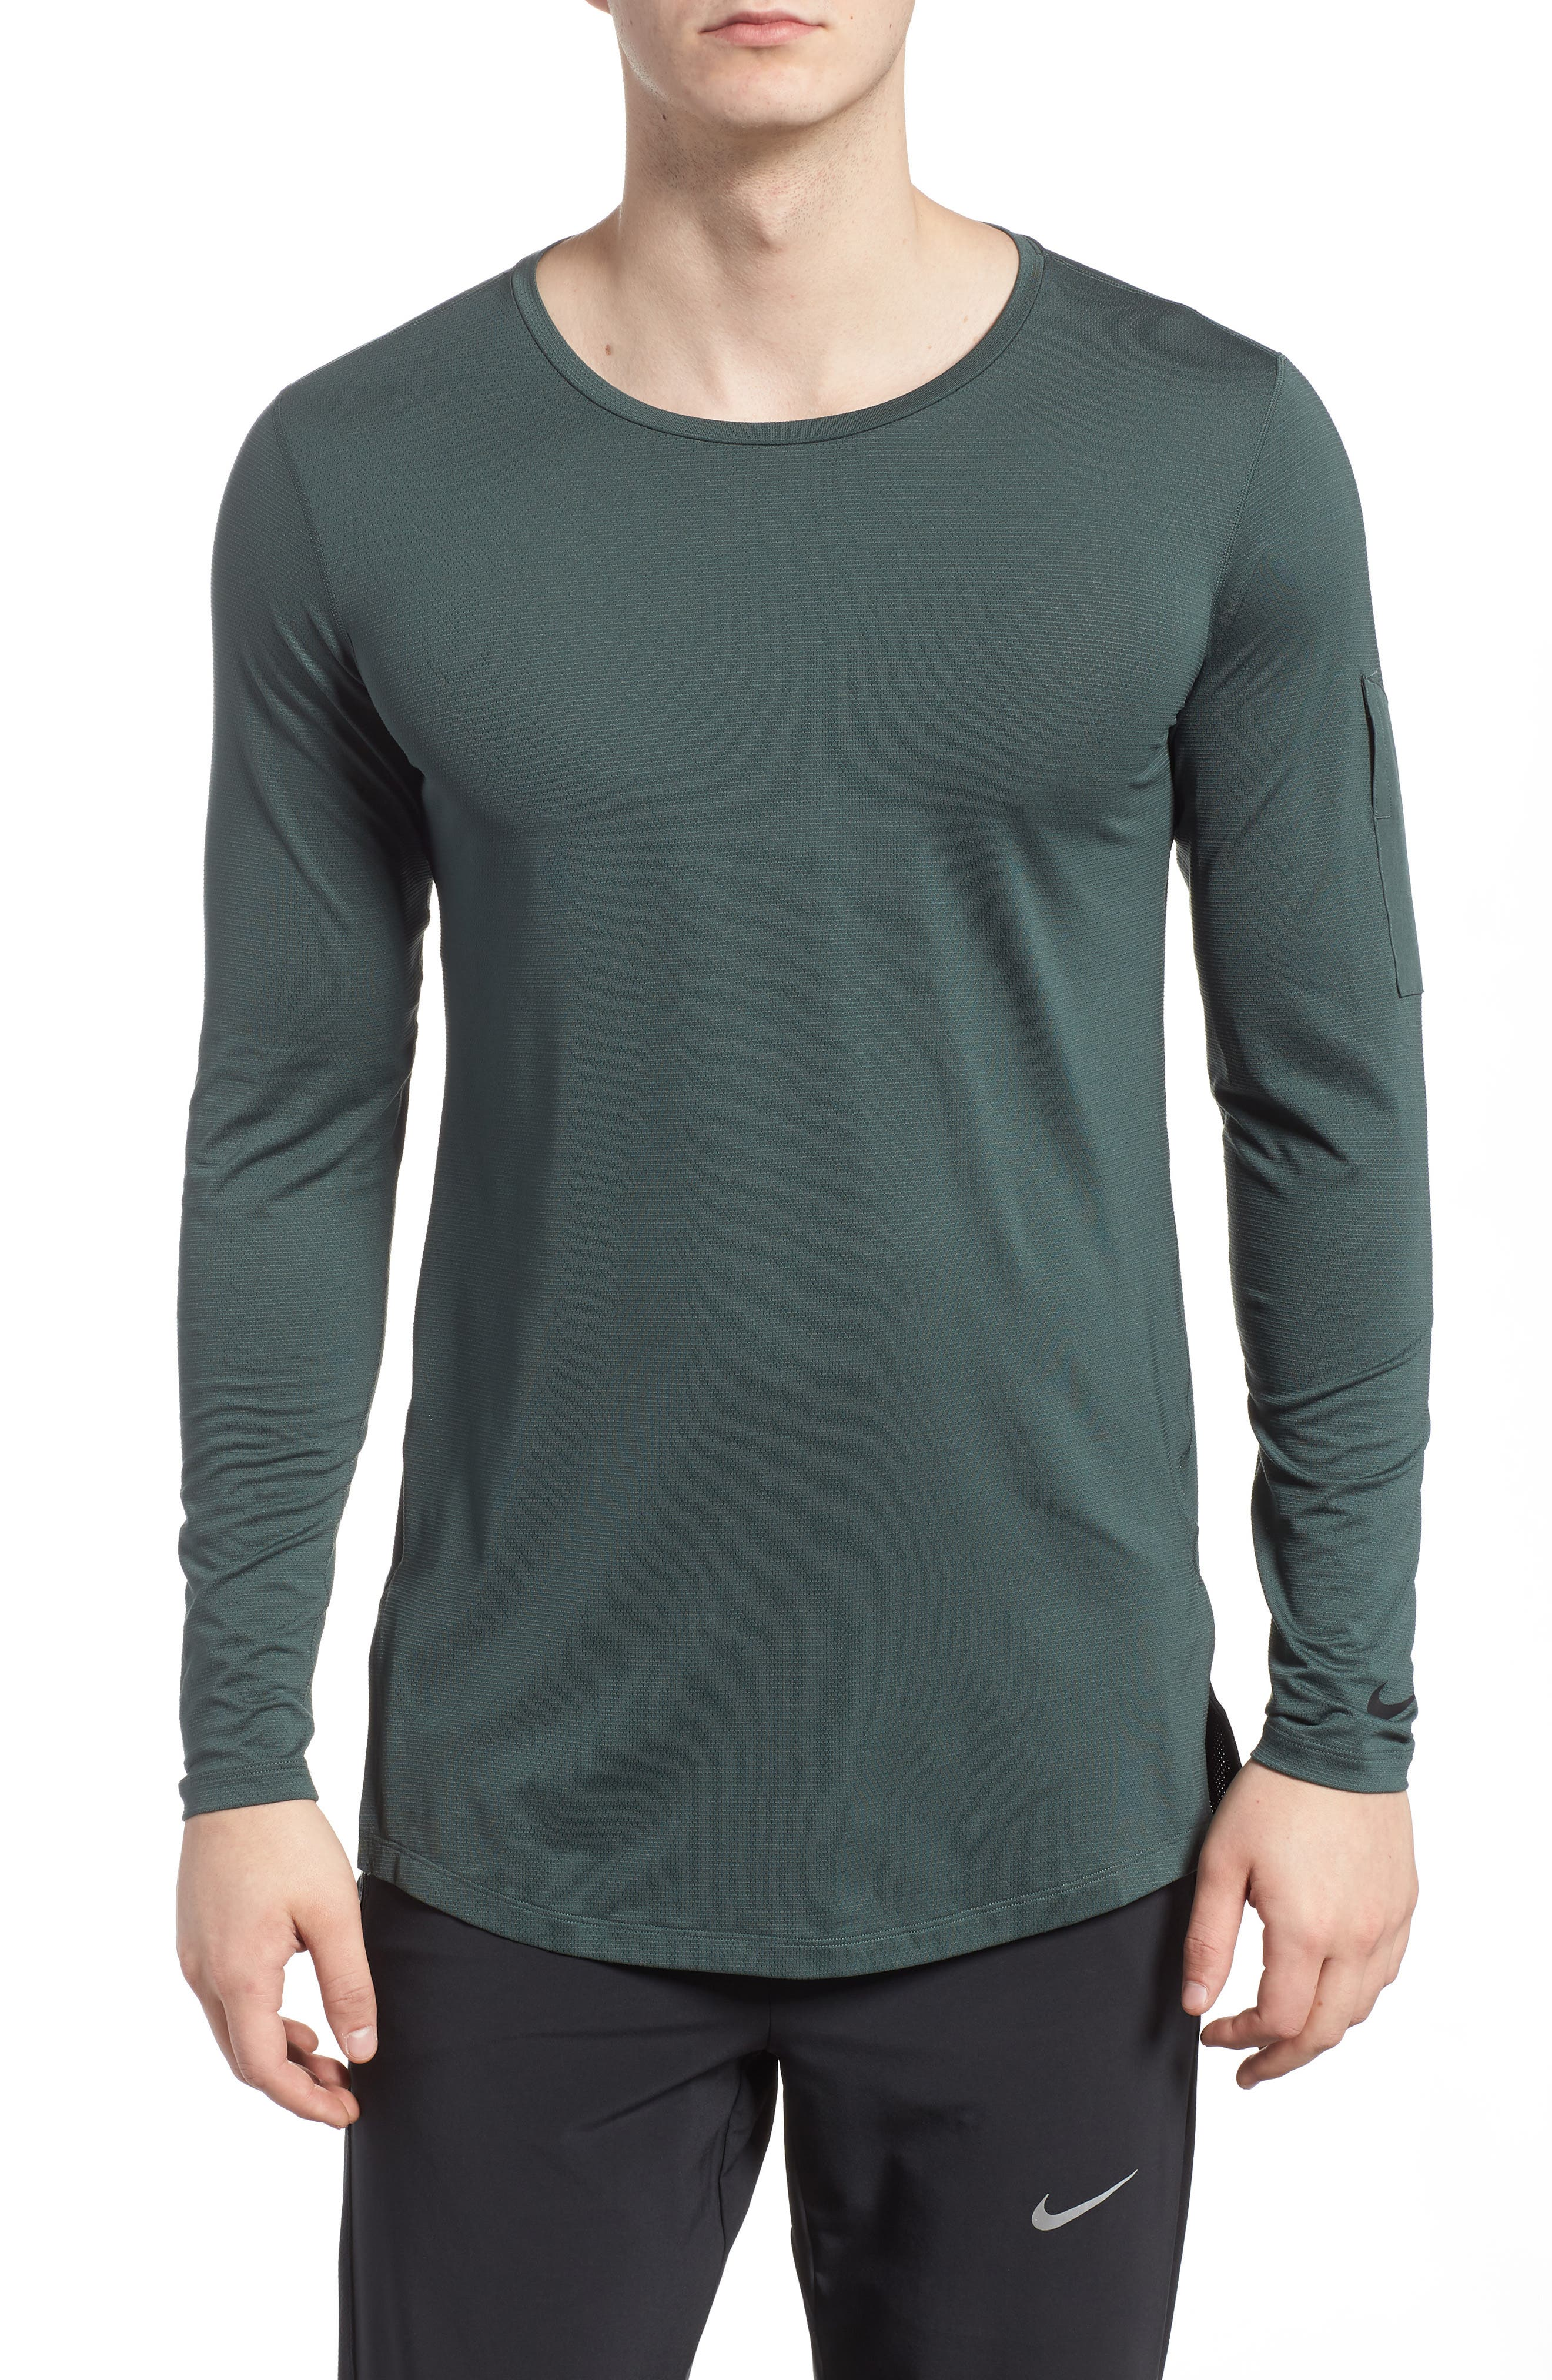 Pro Utility Fitted Training Top,                             Main thumbnail 1, color,                             Vintage Green/ Black